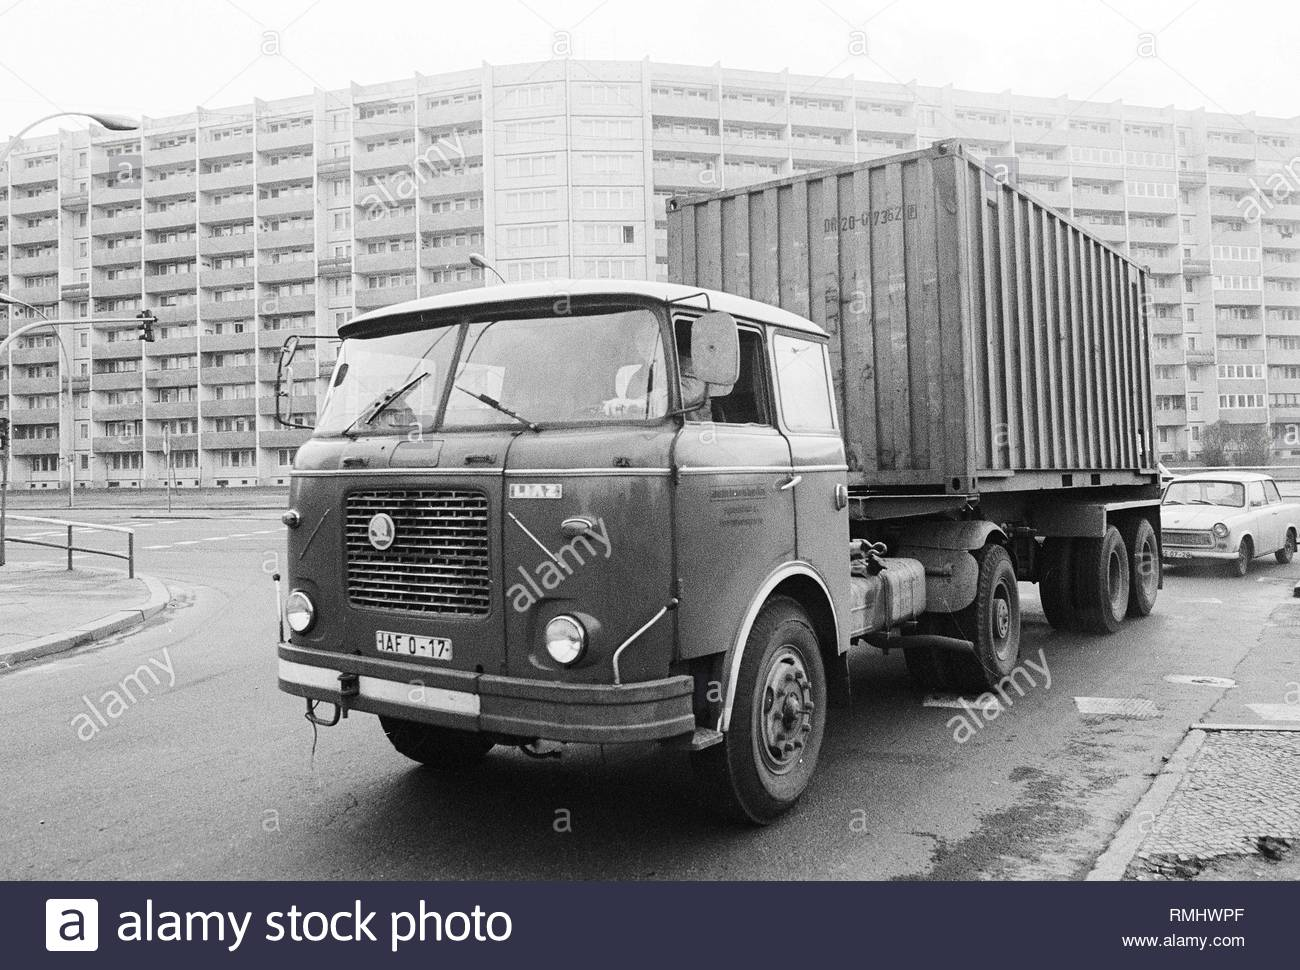 A truck of the tschechoslowakischen utility vehicle manufacturer LIAZ of the type Skoda 706 RT with an oversea container on the Lichtenberger street in Berlin, the former capital of the GDR, German democratic republic. Foto: Heinz Schönfeld - Stock Image